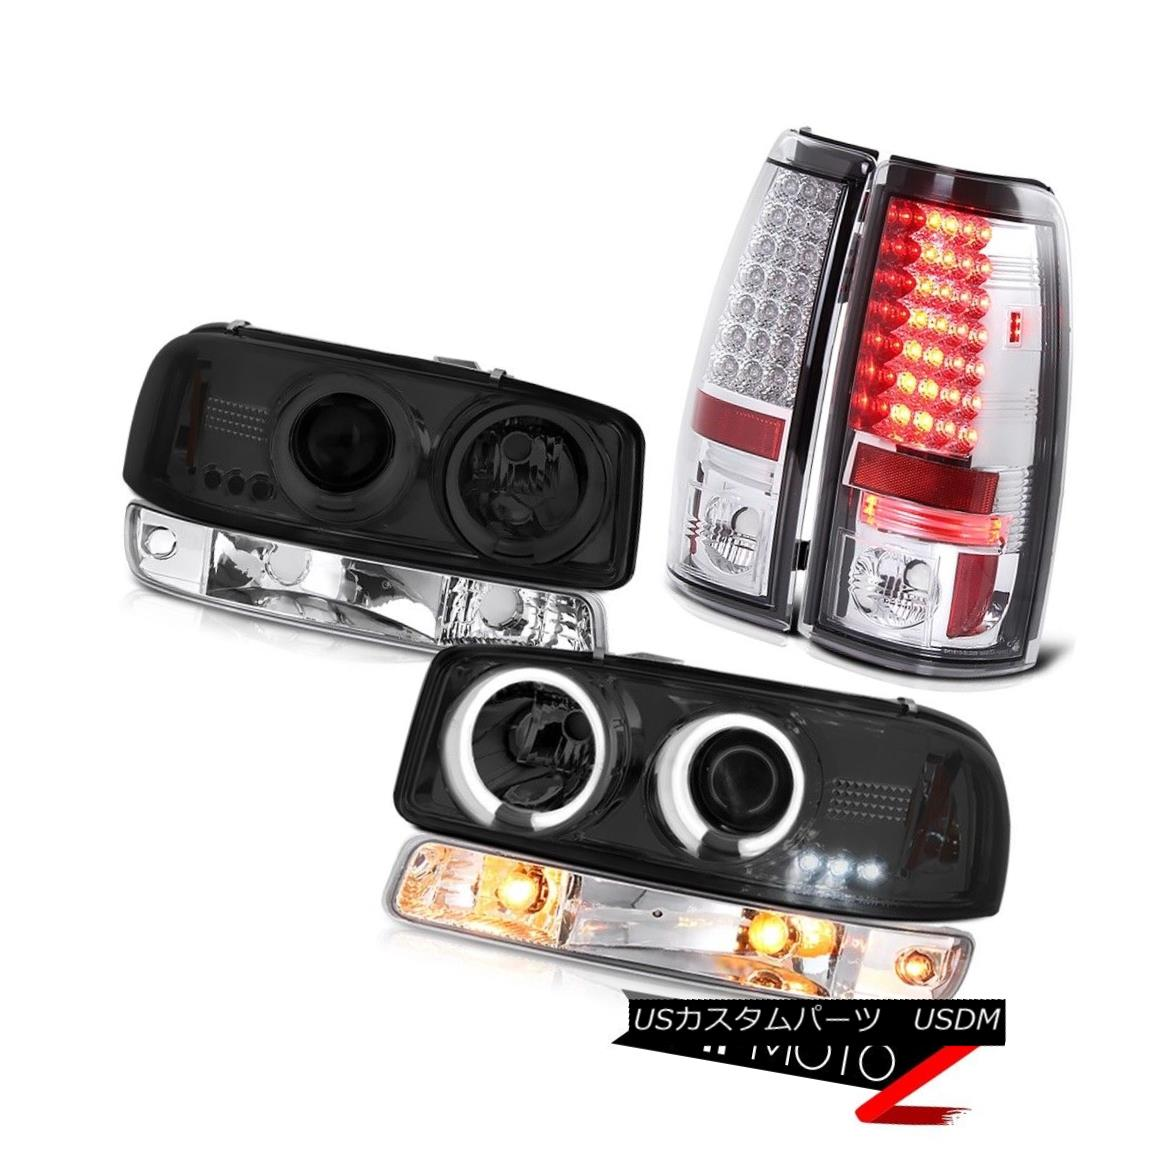 テールライト 1999-2006 Sierra SL Taillights bumper light graphite smoke ccfl headlights LED 1999-2006 Sierra SL灯台バンパーライトグラファイト煙ccflヘッドライトLED